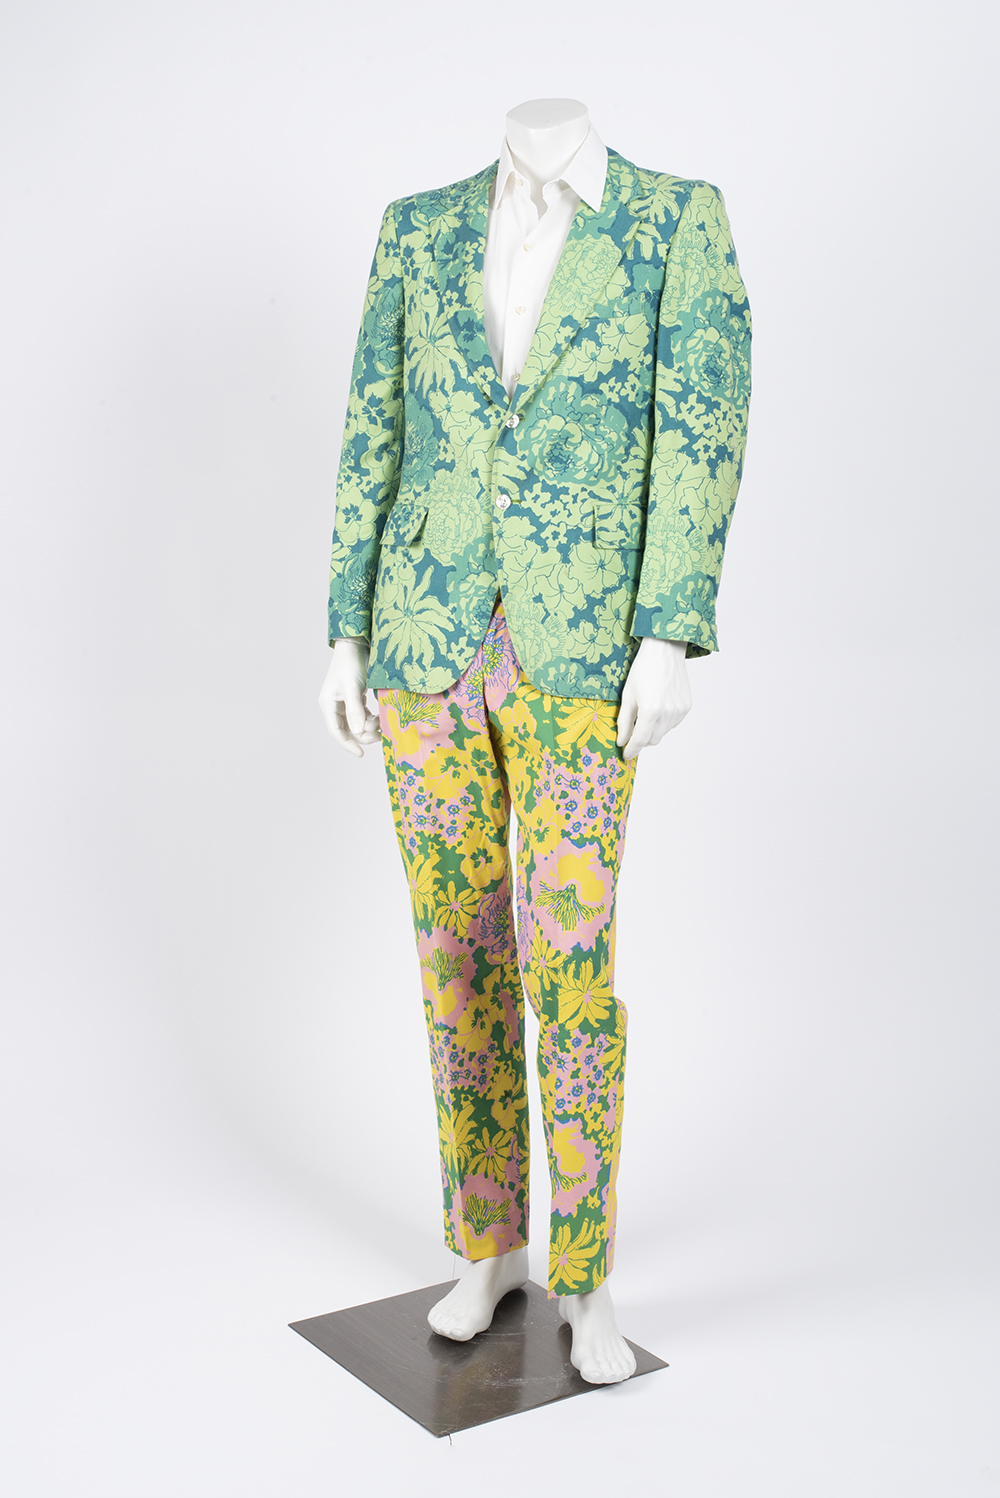 This 1970s Lilly Pulitzer suit will be one of 14 menswear looks from the Texas Fashion Collection on exhibit in